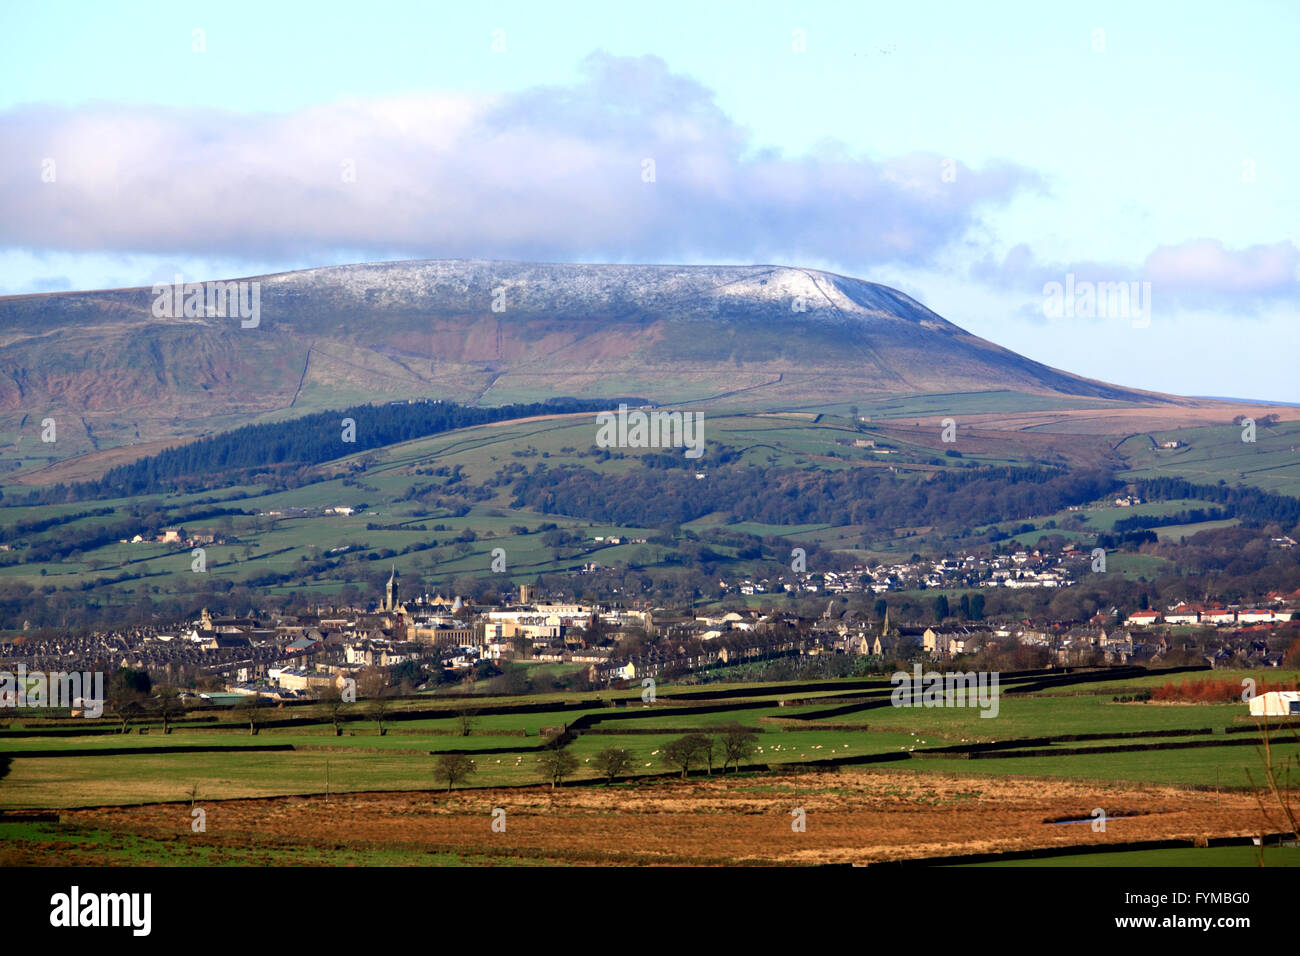 The 'Big End' of Pendle Hill with a dusting of snow looks down on the town of Colne, Lancashire. - Stock Image